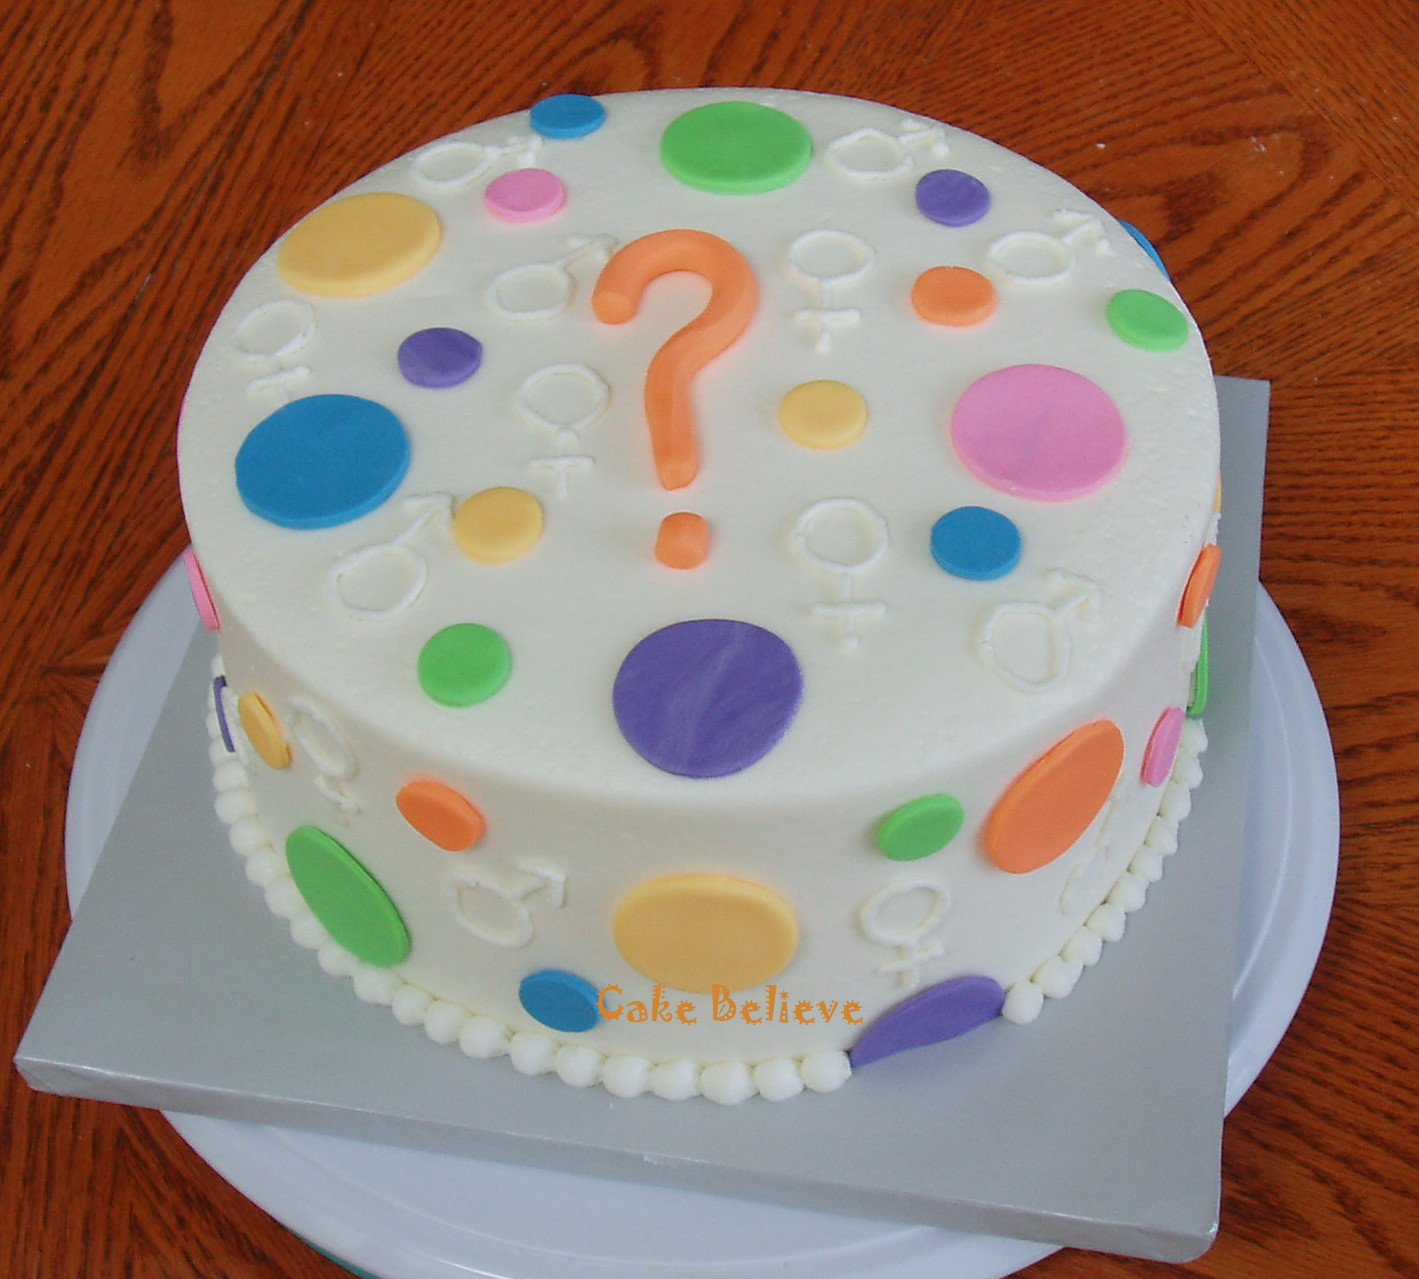 Cake Design Questions : Cake Believe: Baby Gender Reveal Cake